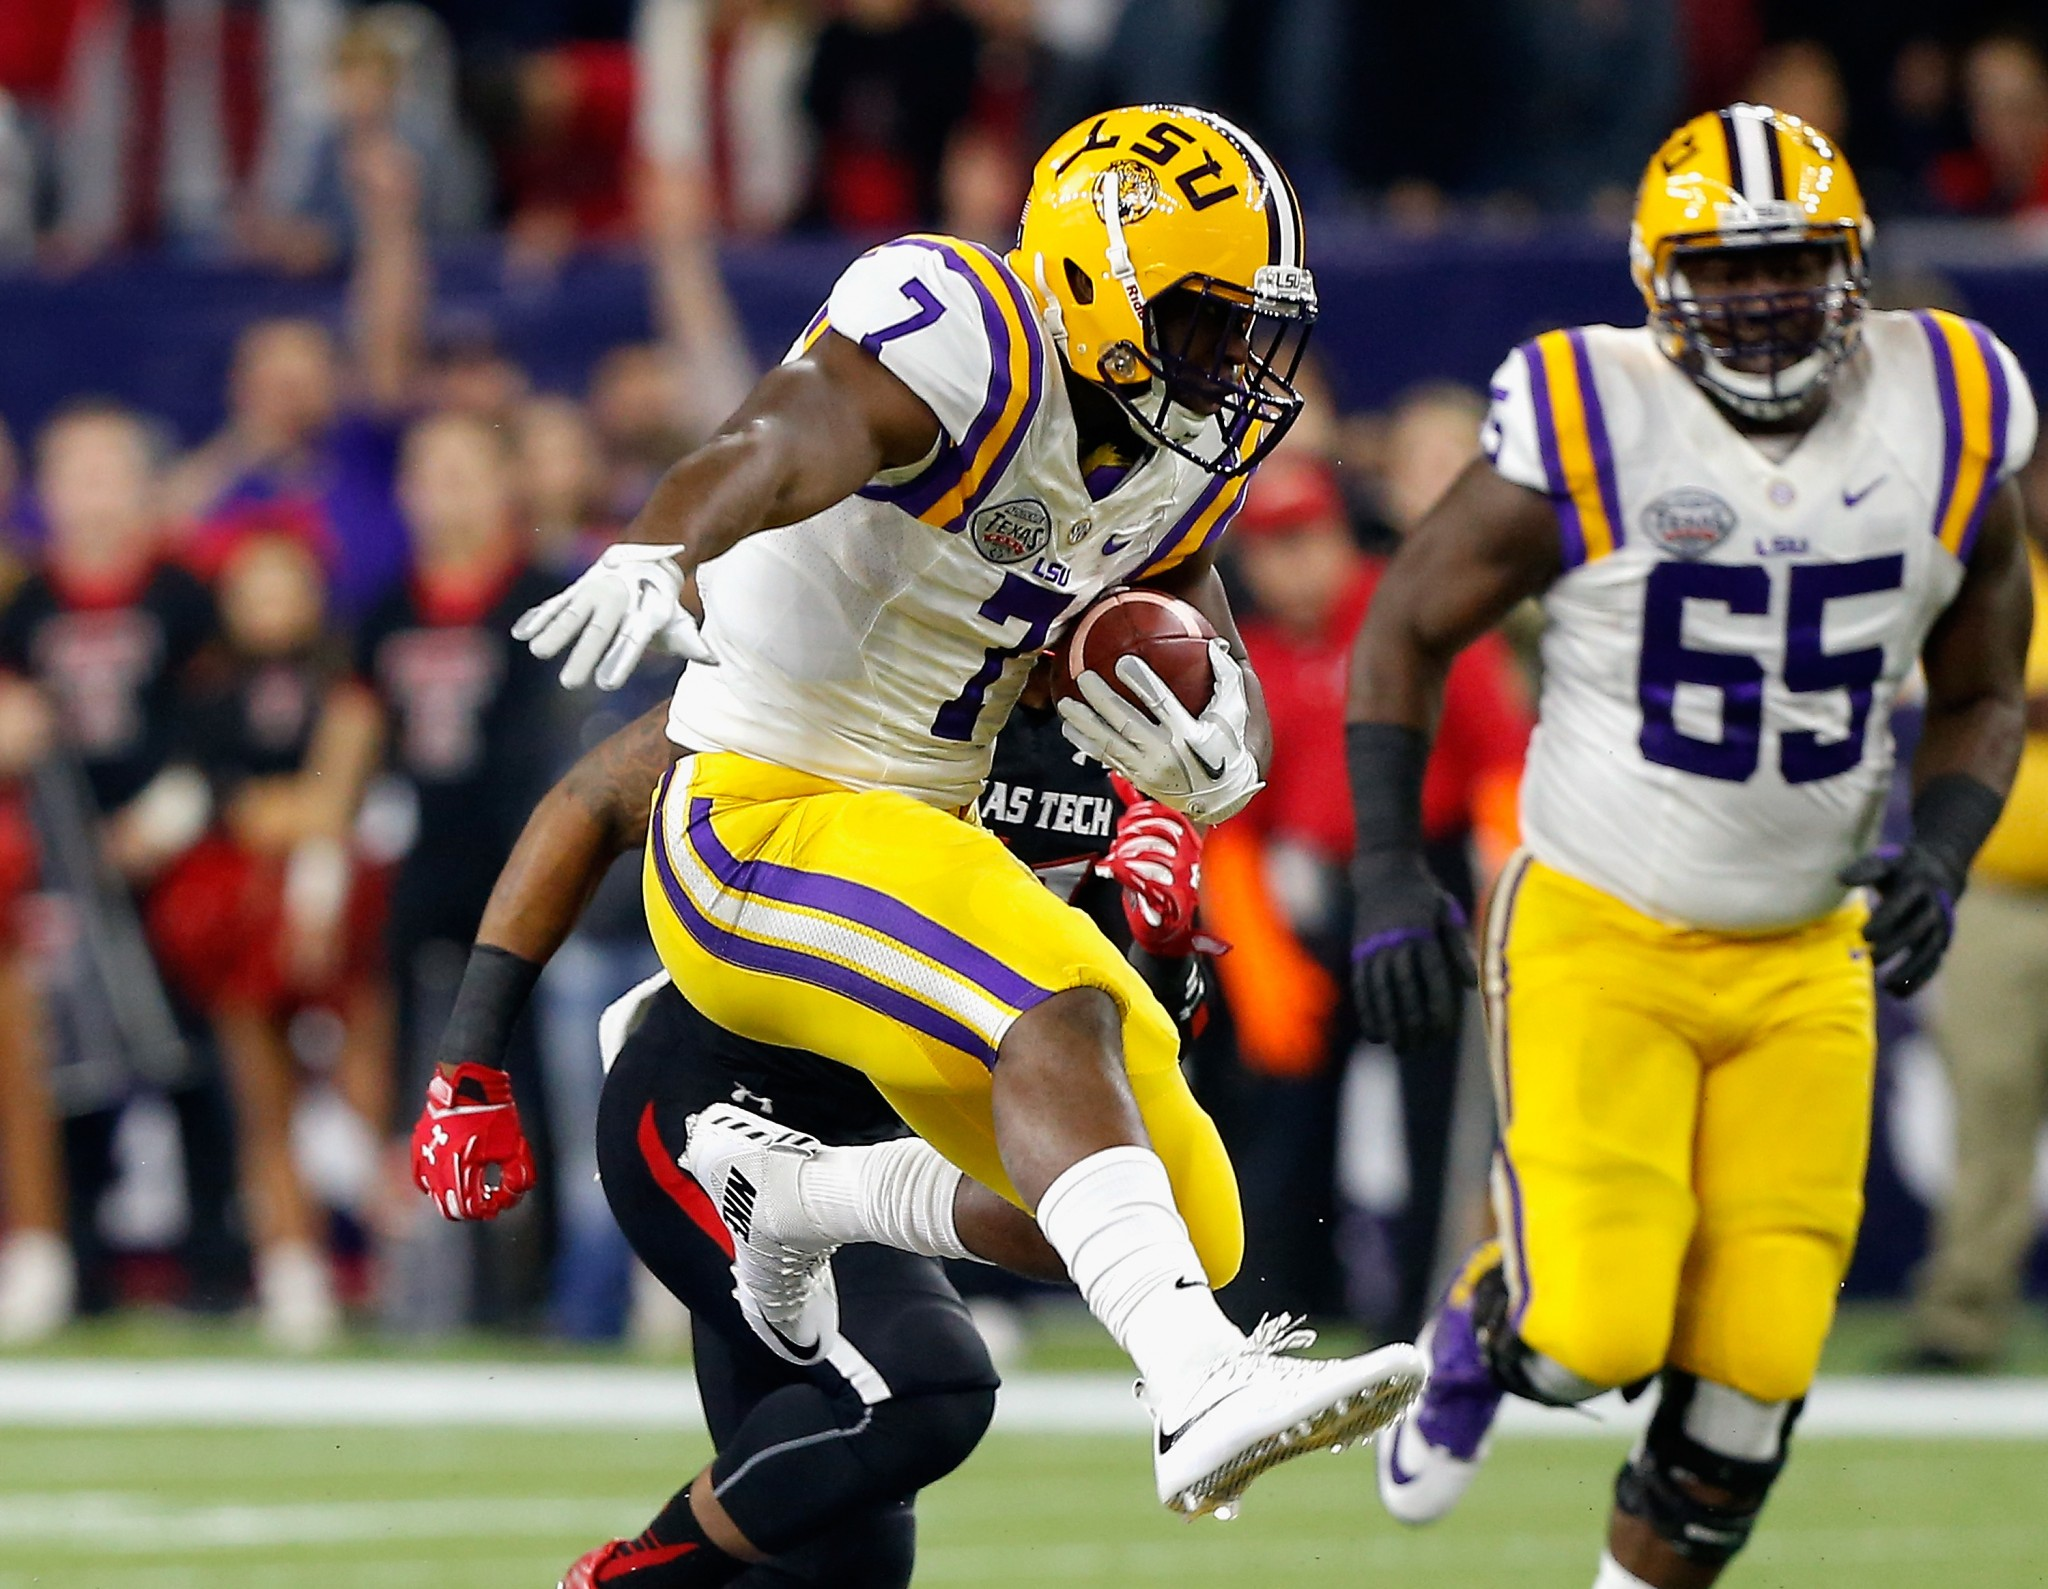 Leonard Fournette is among the Heisman frontrunners for the 2016 season. (AP Photo/Bob Levey, File)